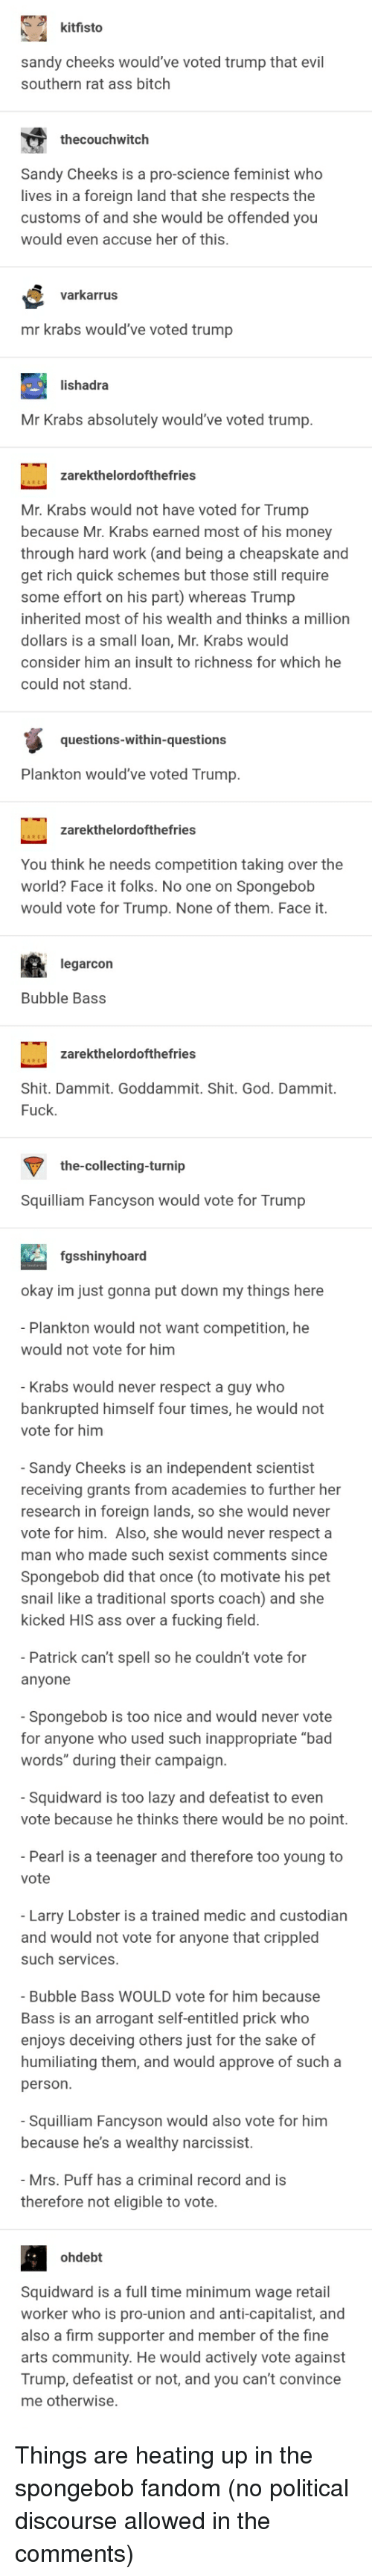 """Ass, Bad, and Bitch: kitfisto  sandy cheeks would've voted trump that evil  southern rat ass bitch  thecouchwitch  Sandy Cheeks is a pro-science feminist who  lives in a foreign land that she respects the  customs of and she would be offended you  would even accuse her of this  mr krabs would've voted trump  lishadra  Mr Krabs absolutely would've voted trump  Mr. Krabs would not have voted for Trump  because Mr. Krabs earned most of his money  through hard work (and being a cheapskate and  get rich quick schemes but those still require  some effort on his part) whereas Trump  inherited most of his wealth and thinks a million  dollars is a small loan, Mr. Krabs would  consider him an insult to richness for which he  could not stand.  questions-within-questions  Plankton would've voted Trump.  You think he needs competition taking over the  world? Face it folks. No one on Spongebob  would vote for Trump. None of them. Face it.  legarcon  Bubble Bass  Shit. Dammit. Goddammit. Shit. God. Dammit.  Fuck  the-collecting-turnip  Squilliam Fancyson would vote for Trump  fgsshinyhoard  okay im just gonna put down my things here  Plankton would not want competition, he  would not vote for him  Krabs would never respect a guy who  bankrupted himself four times, he would not  vote for him  Sandy Cheeks is an independent scientist  receiving grants from academies to further her  research in foreign lands, so she would never  vote for him. Also, she would never respect a  man who made such sexist comments since  Spongebob did that once (to motivate his pet  snail like a traditional sports coach) and she  kicked HIS ass over a fucking field  Patrick can't spell so he couldn't vote for  anyone  Spongebob is too nice and would never vote  for anyone who used such inappropriate """"bad  words"""" during their campaign.  Squidward is too lazy and defeatist to even  vote because he thinks there would be no point.  Pearl is a teenager and therefore too young to  vote  Larry Lobster is a traine"""